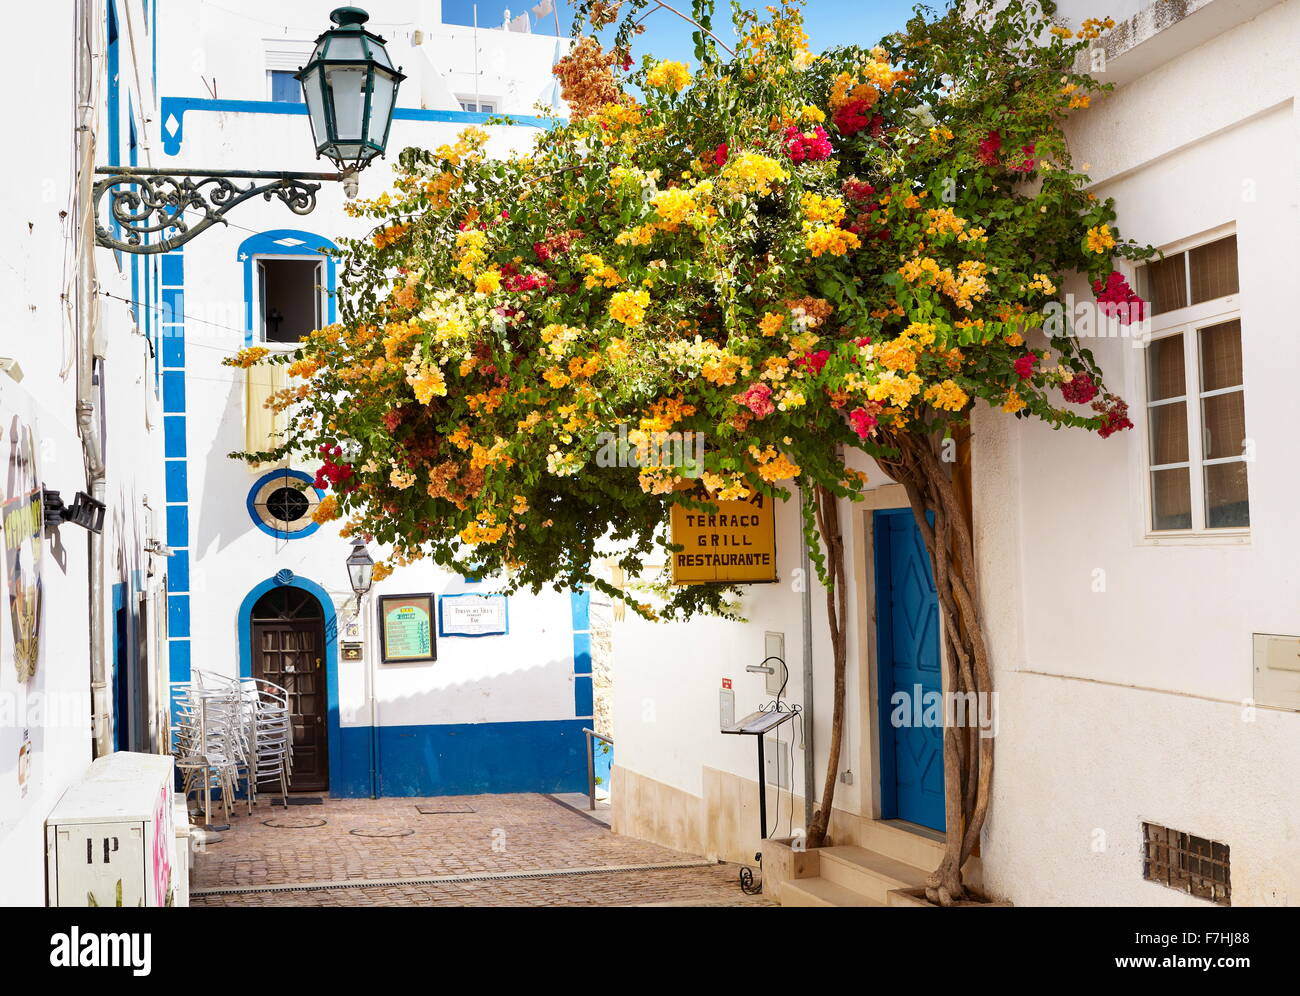 Blooming flowers at Albufeira old town, Algarve, Portugal - Stock Image